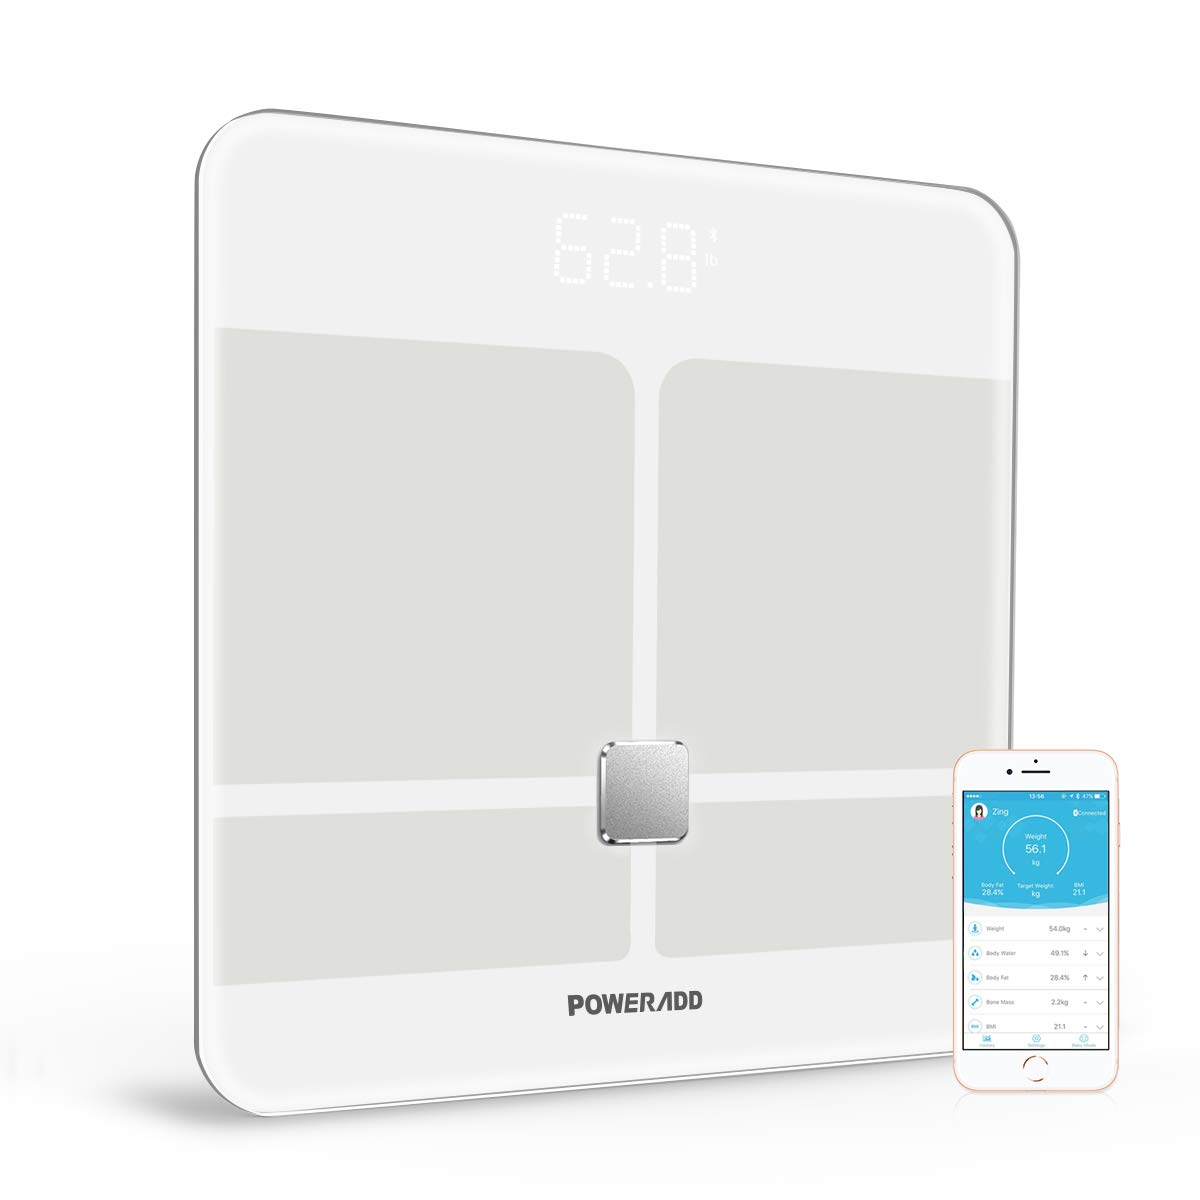 Bluetooth Body Fat Scale,Poweradd Smart BMI Scale Digital Bathroom Wireless Weight Scale,Body Composition Analyzer with Smartphone App,396lb,FDA Approved